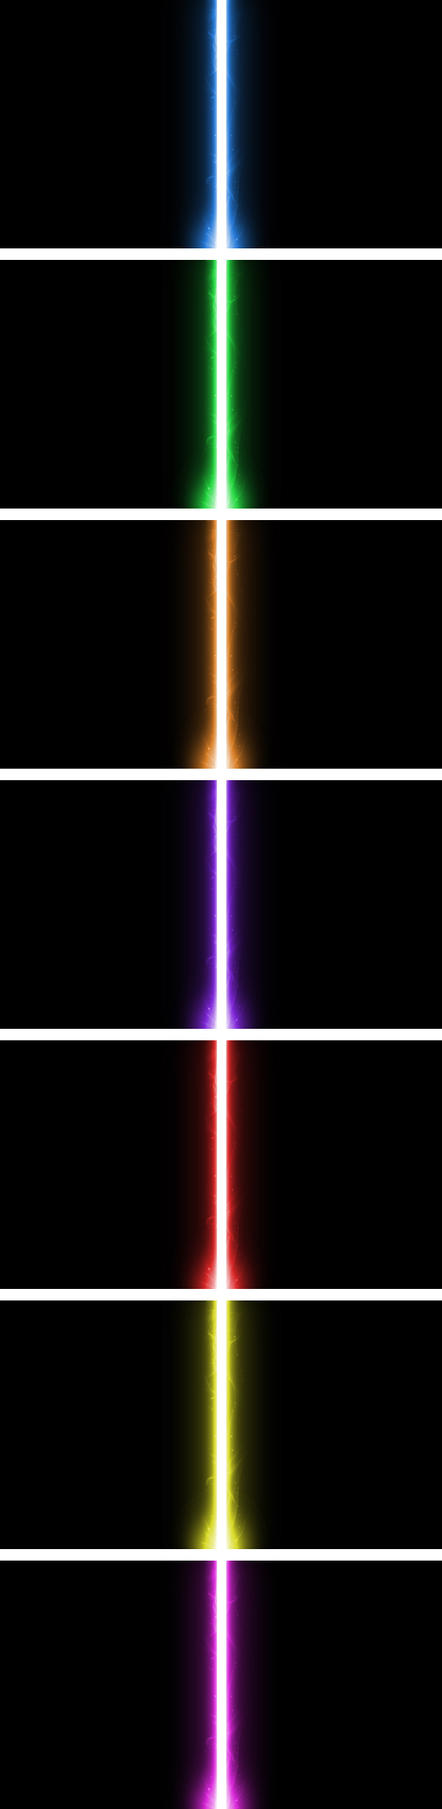 Lightsaber Wallpaper Pack by nerfAvari